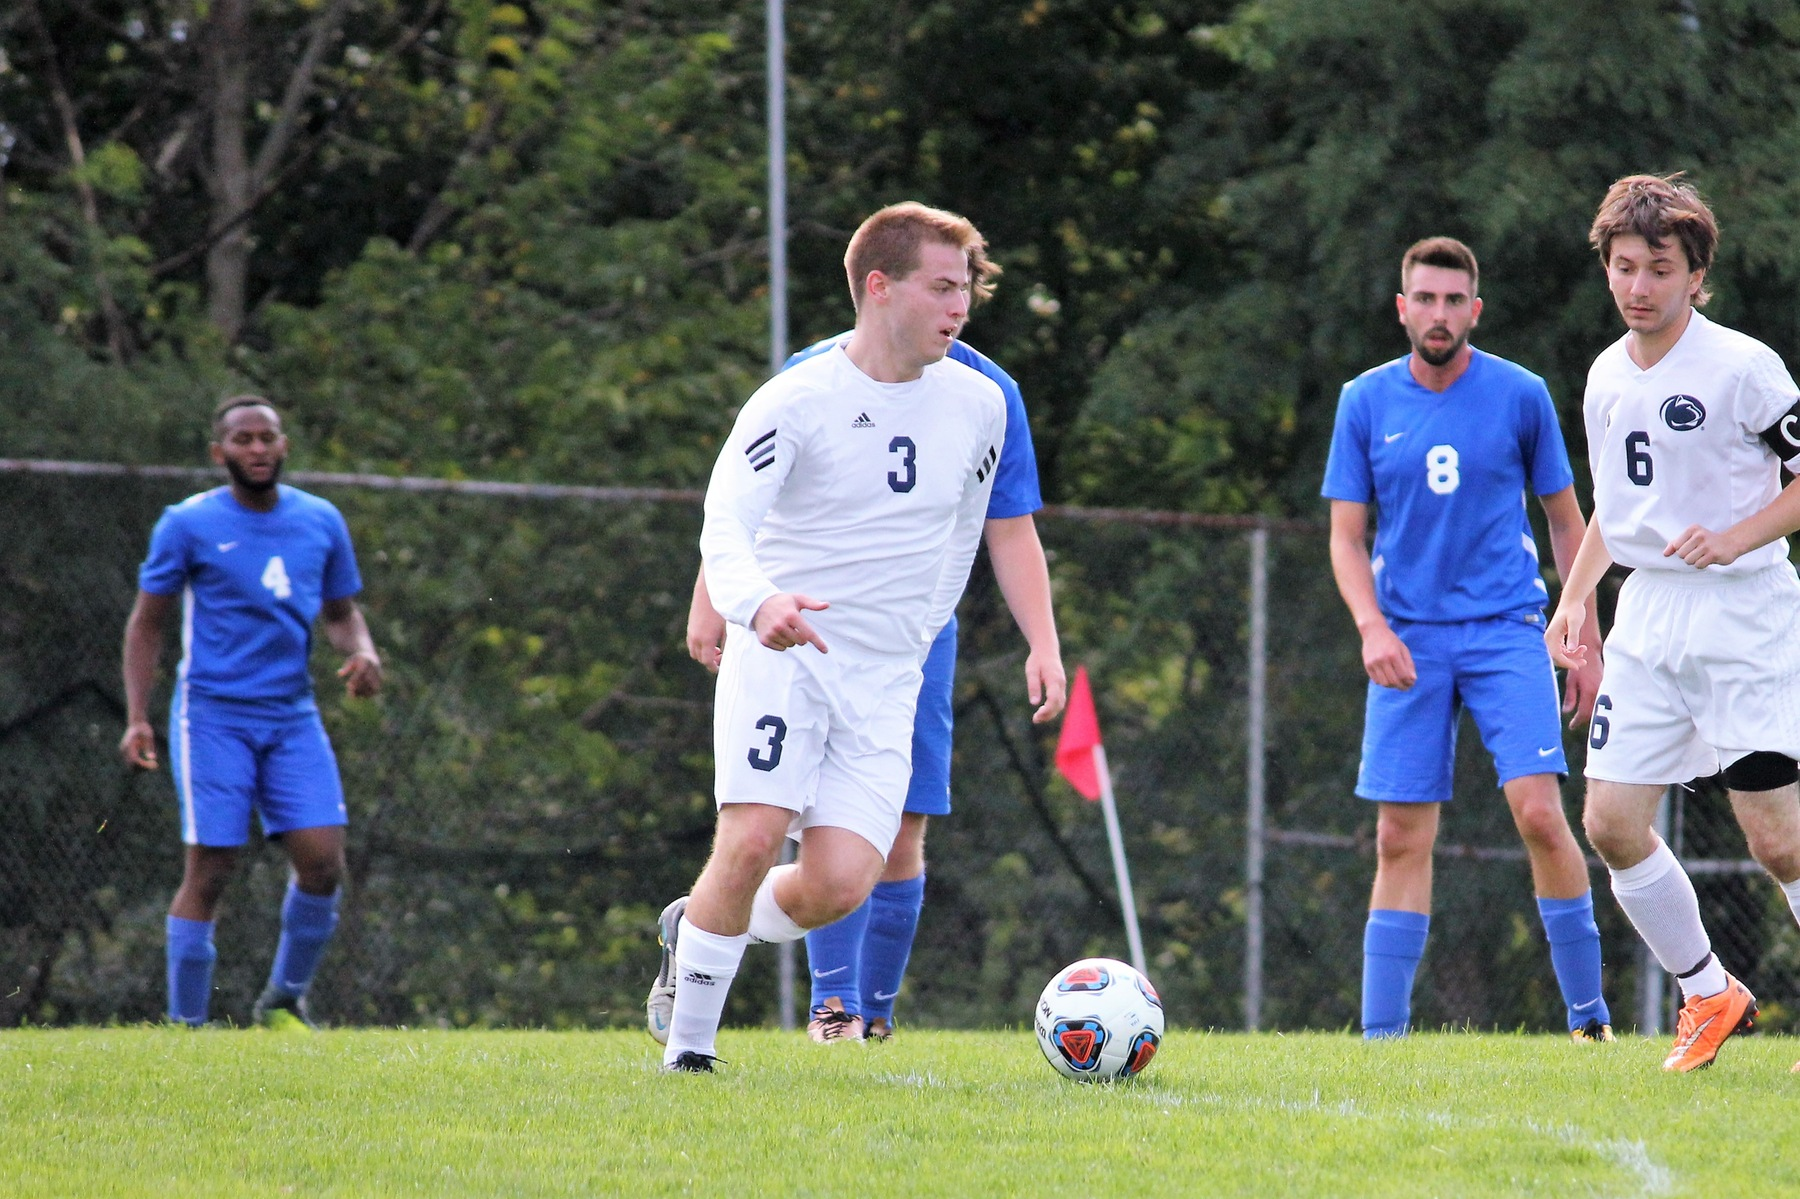 Hamilton Hat-trick lifts Men's Soccer over WCCC